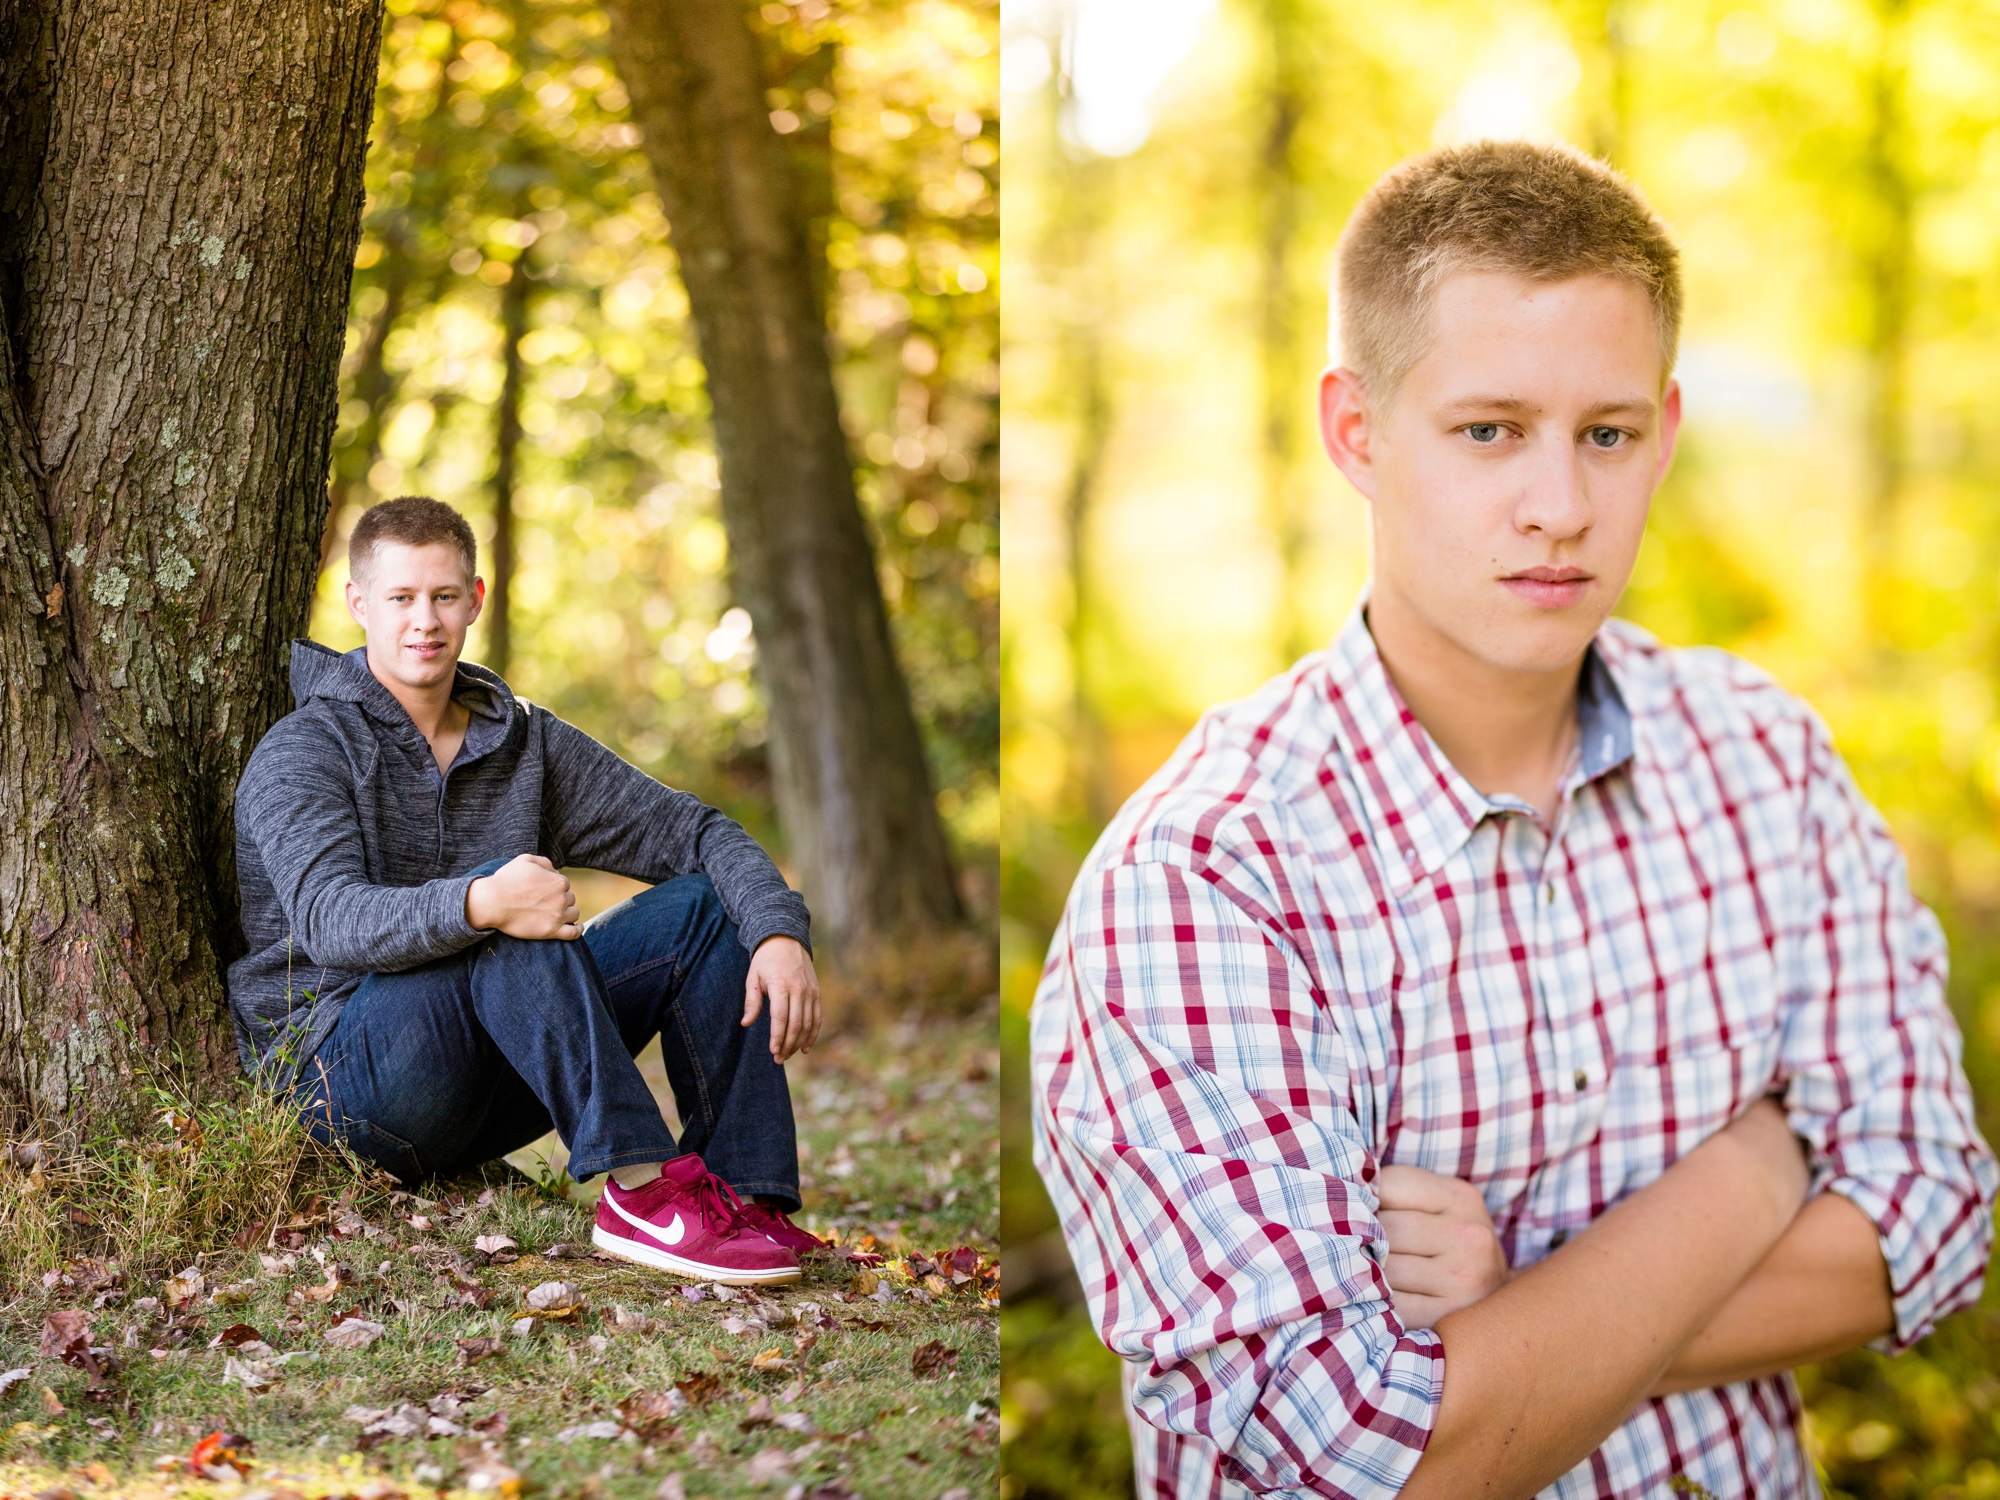 baden senior photos, cranberry township senior photos, cranberry township senior pictures, cranberry township senior photographer